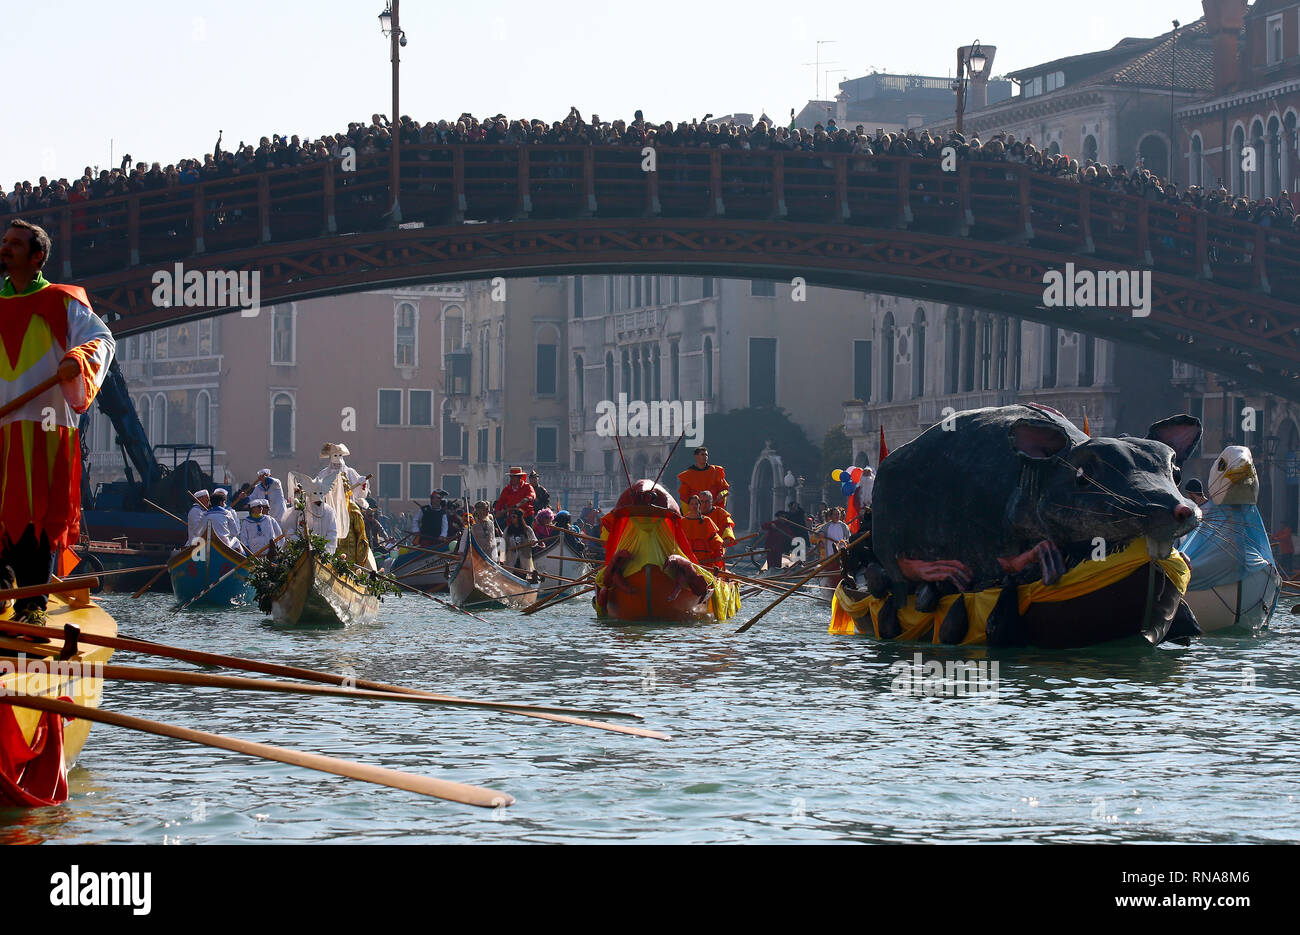 The party of all the Venetians who inaugurates the Carnival, dedicated to citizens and guests of the lagoon city, this year doubles with a double appointment on the foundations of Cannaregio. Sunday, February 17 at 11.00 the water procession of the Coordination Associations Rowing Vogue to the Venetian will drop the moorings from Punta della Dogana along the Grand Canal until you reach the popular Rio di Cannaregio, where it will parade in a blaze of crowded audience on the banks. Upon arrival of the masked marching boats, the eno-gastronomic stands will be opened by AEPE, which will offer the Stock Photo